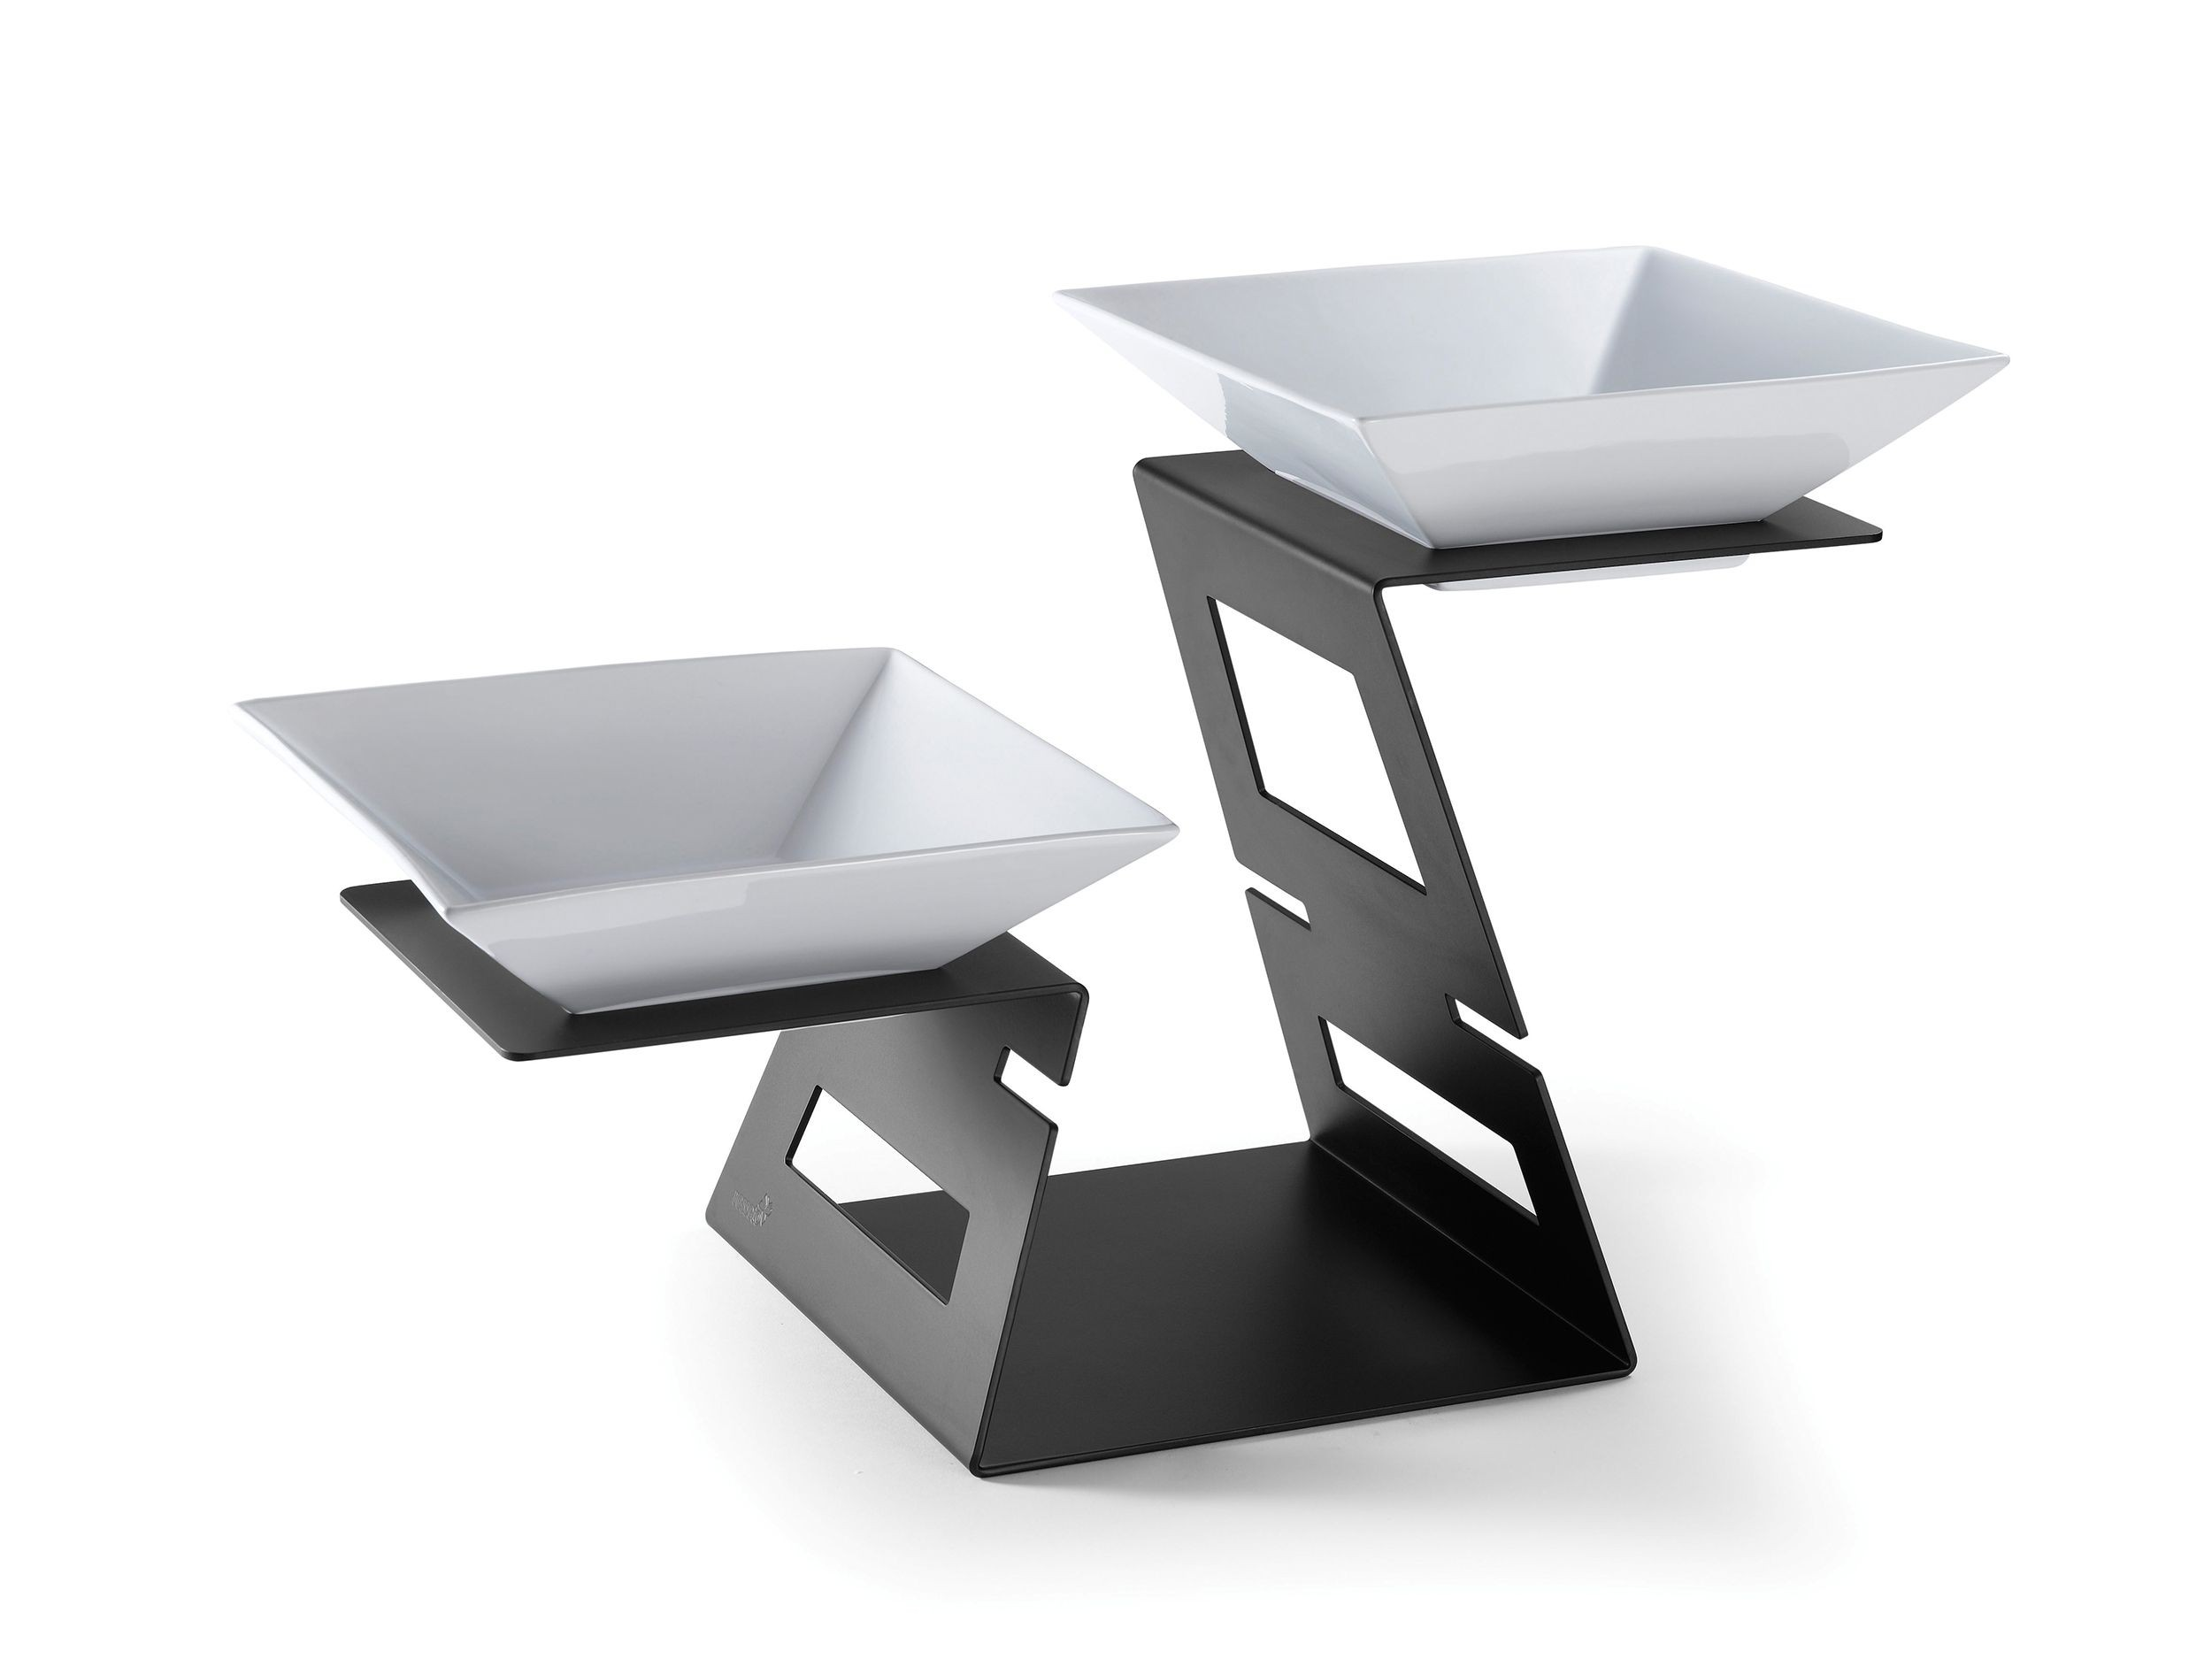 Swan - Multi-Level Riser Black Matte Powder Coated Steel Finish Includes: 2  Porcelain Bowls- 23.4